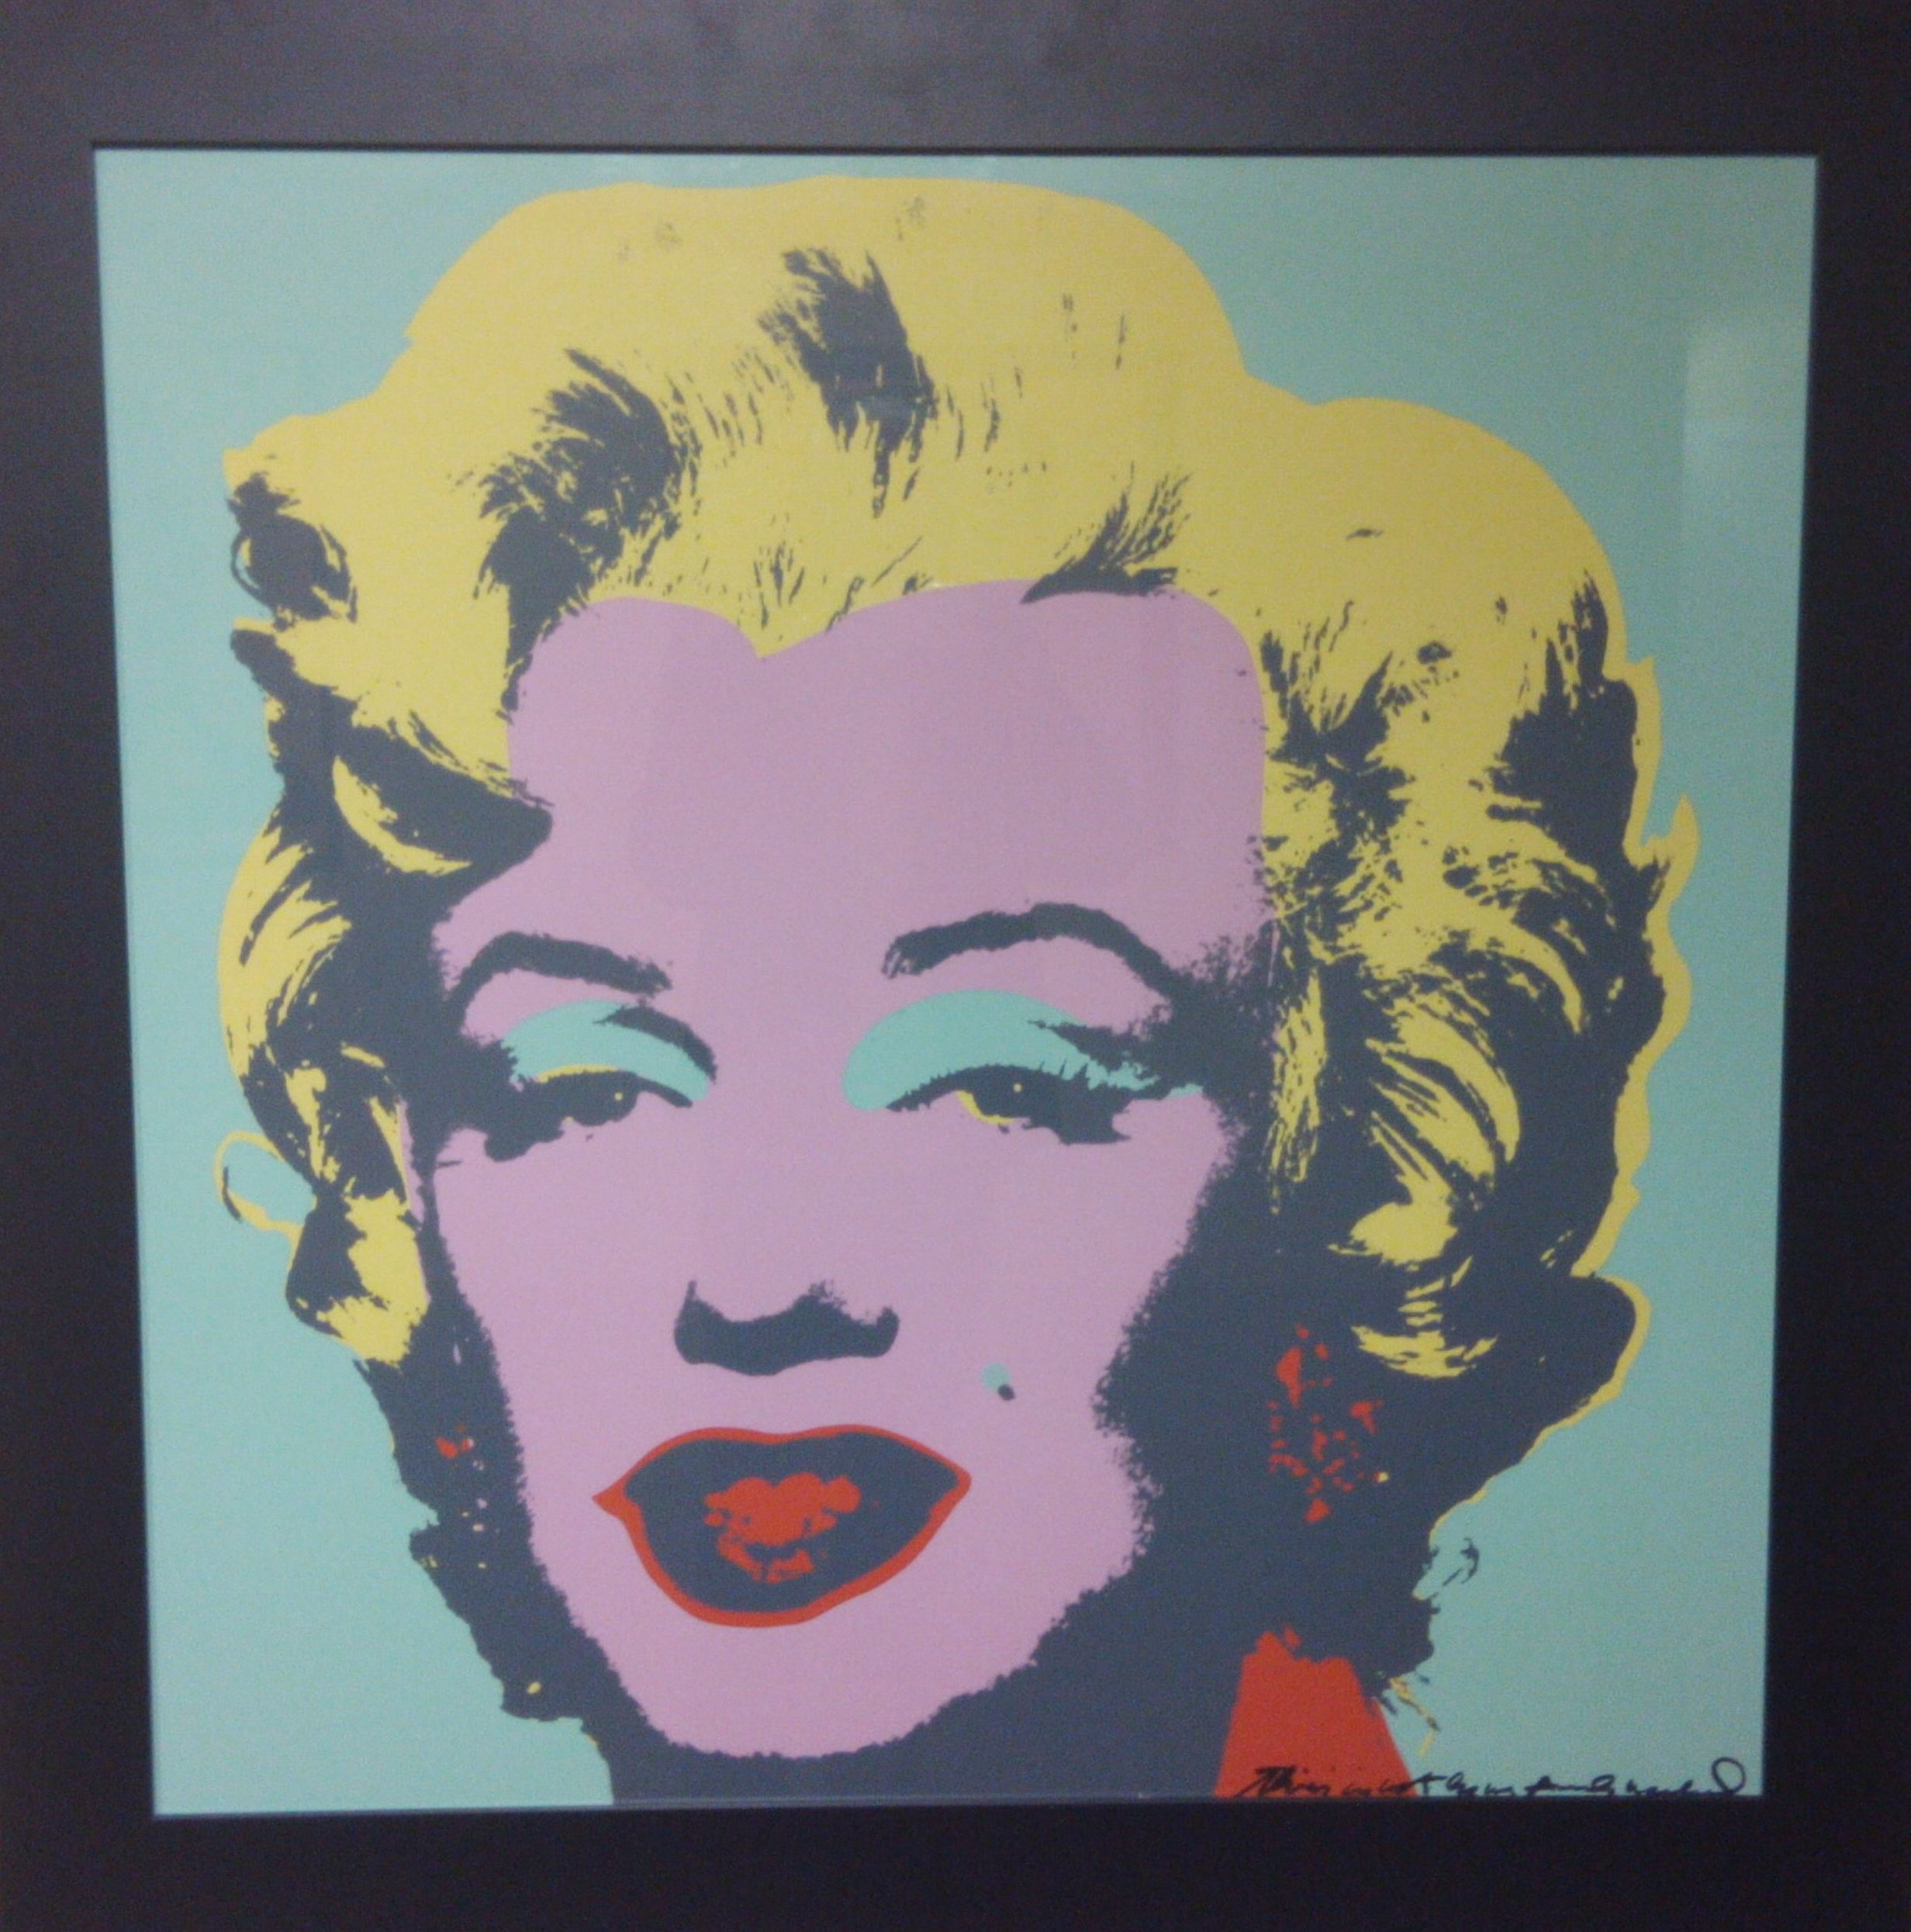 American art comes to brindisi andy warhol puglian for Andy warhol famous paintings